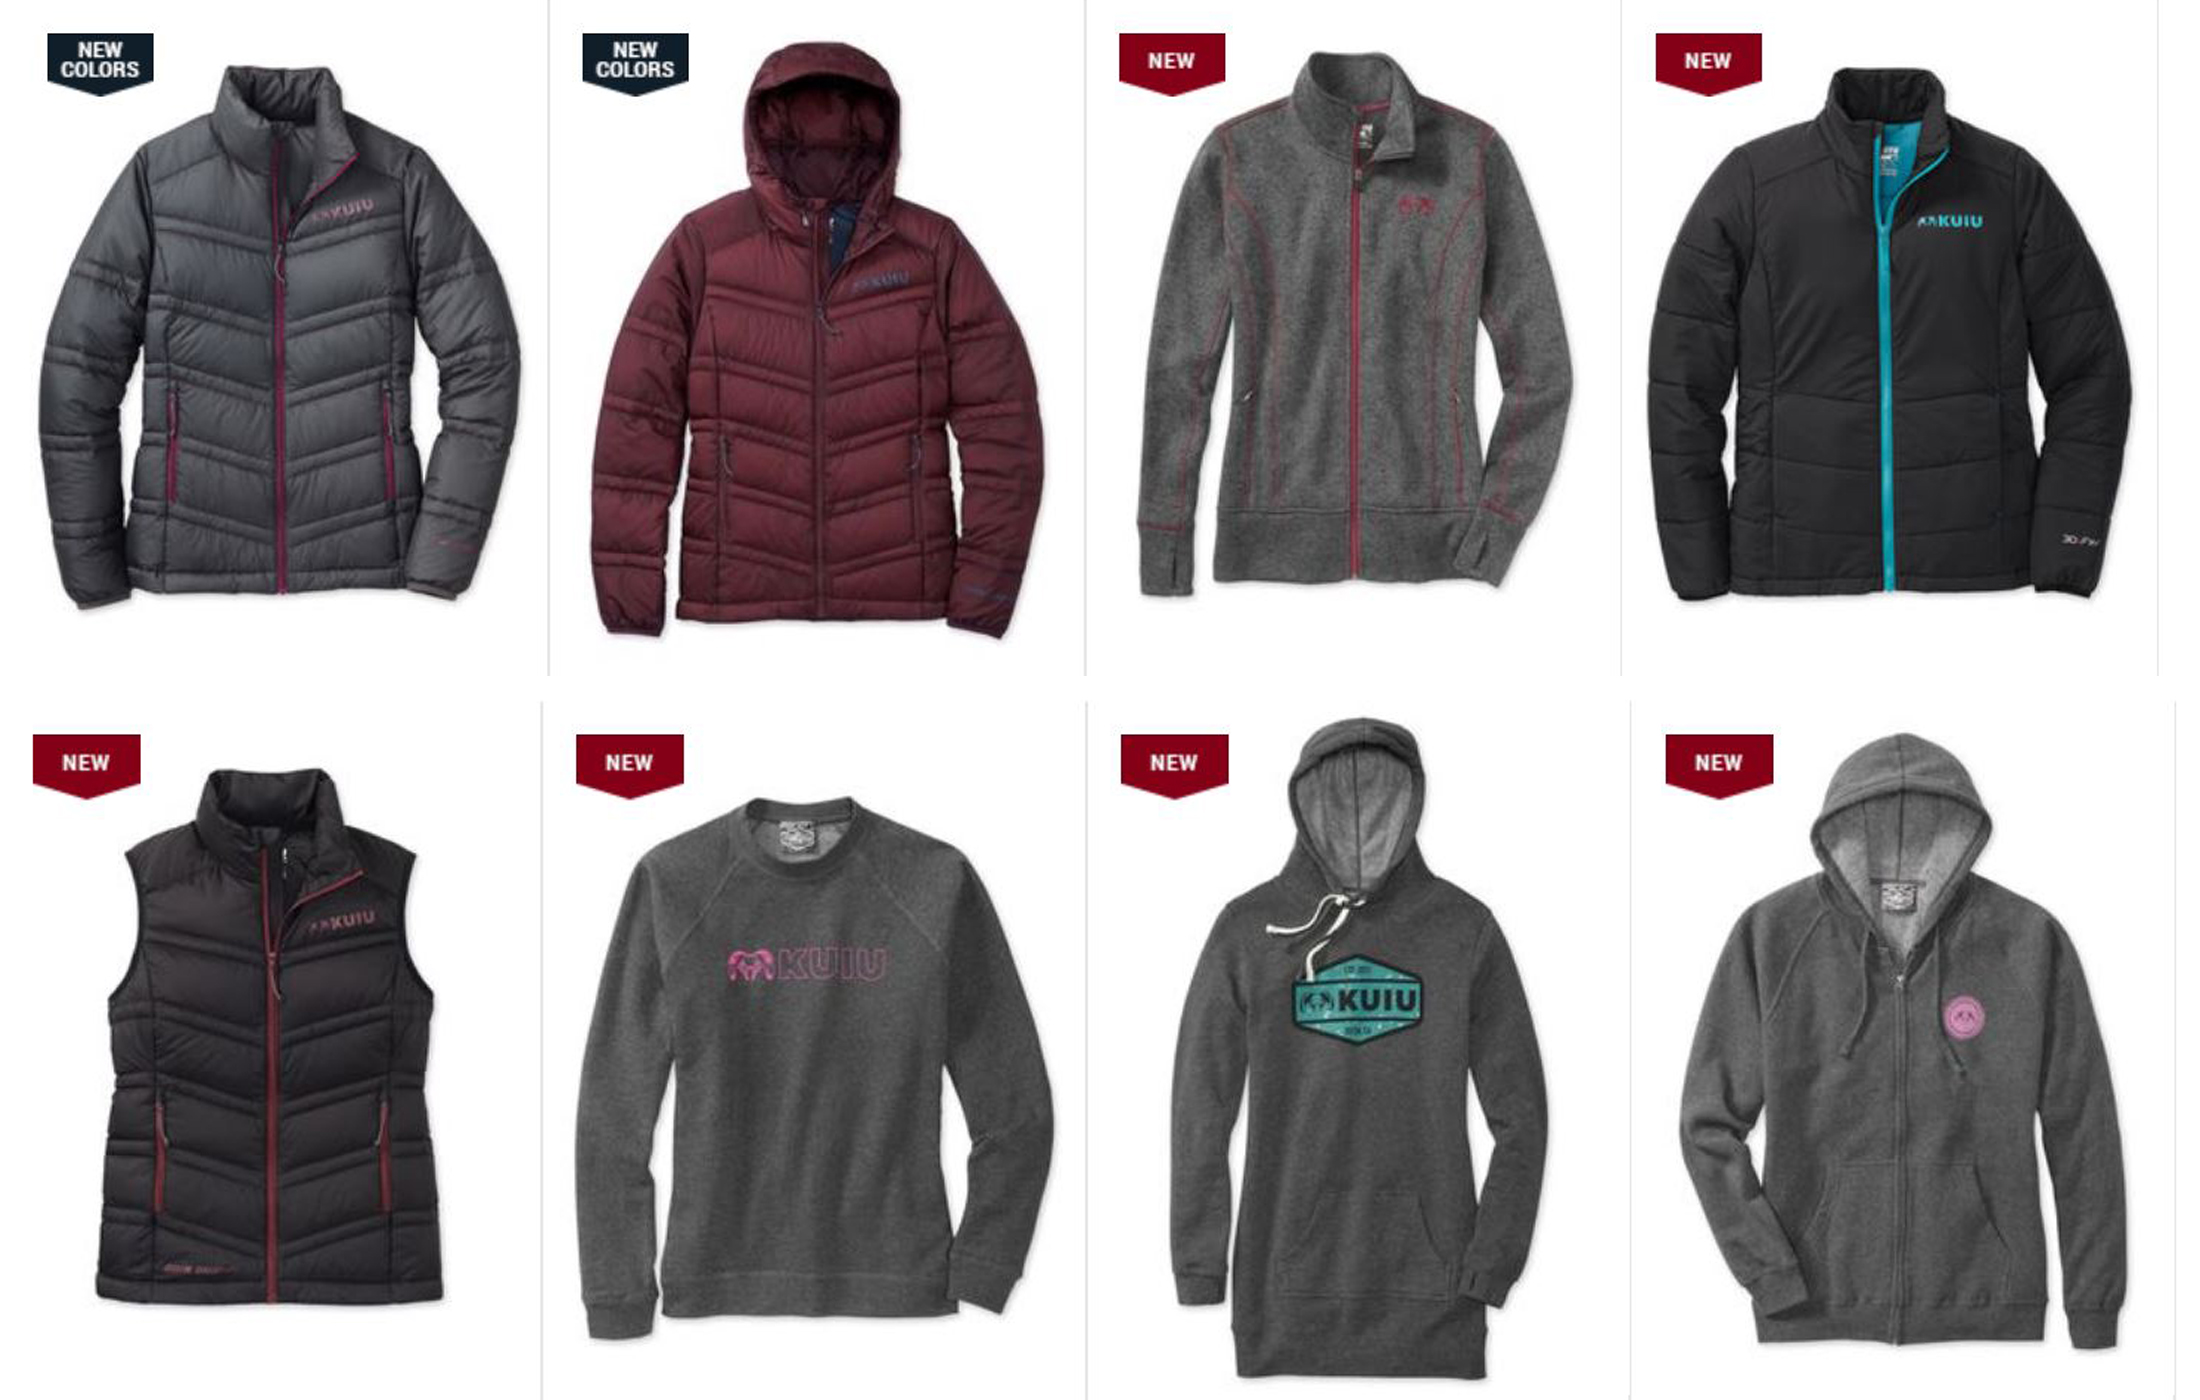 d9d629124edc0 Unfit for Hunting: KUIU Launches Half-Assed Women's Line | GearJunkie